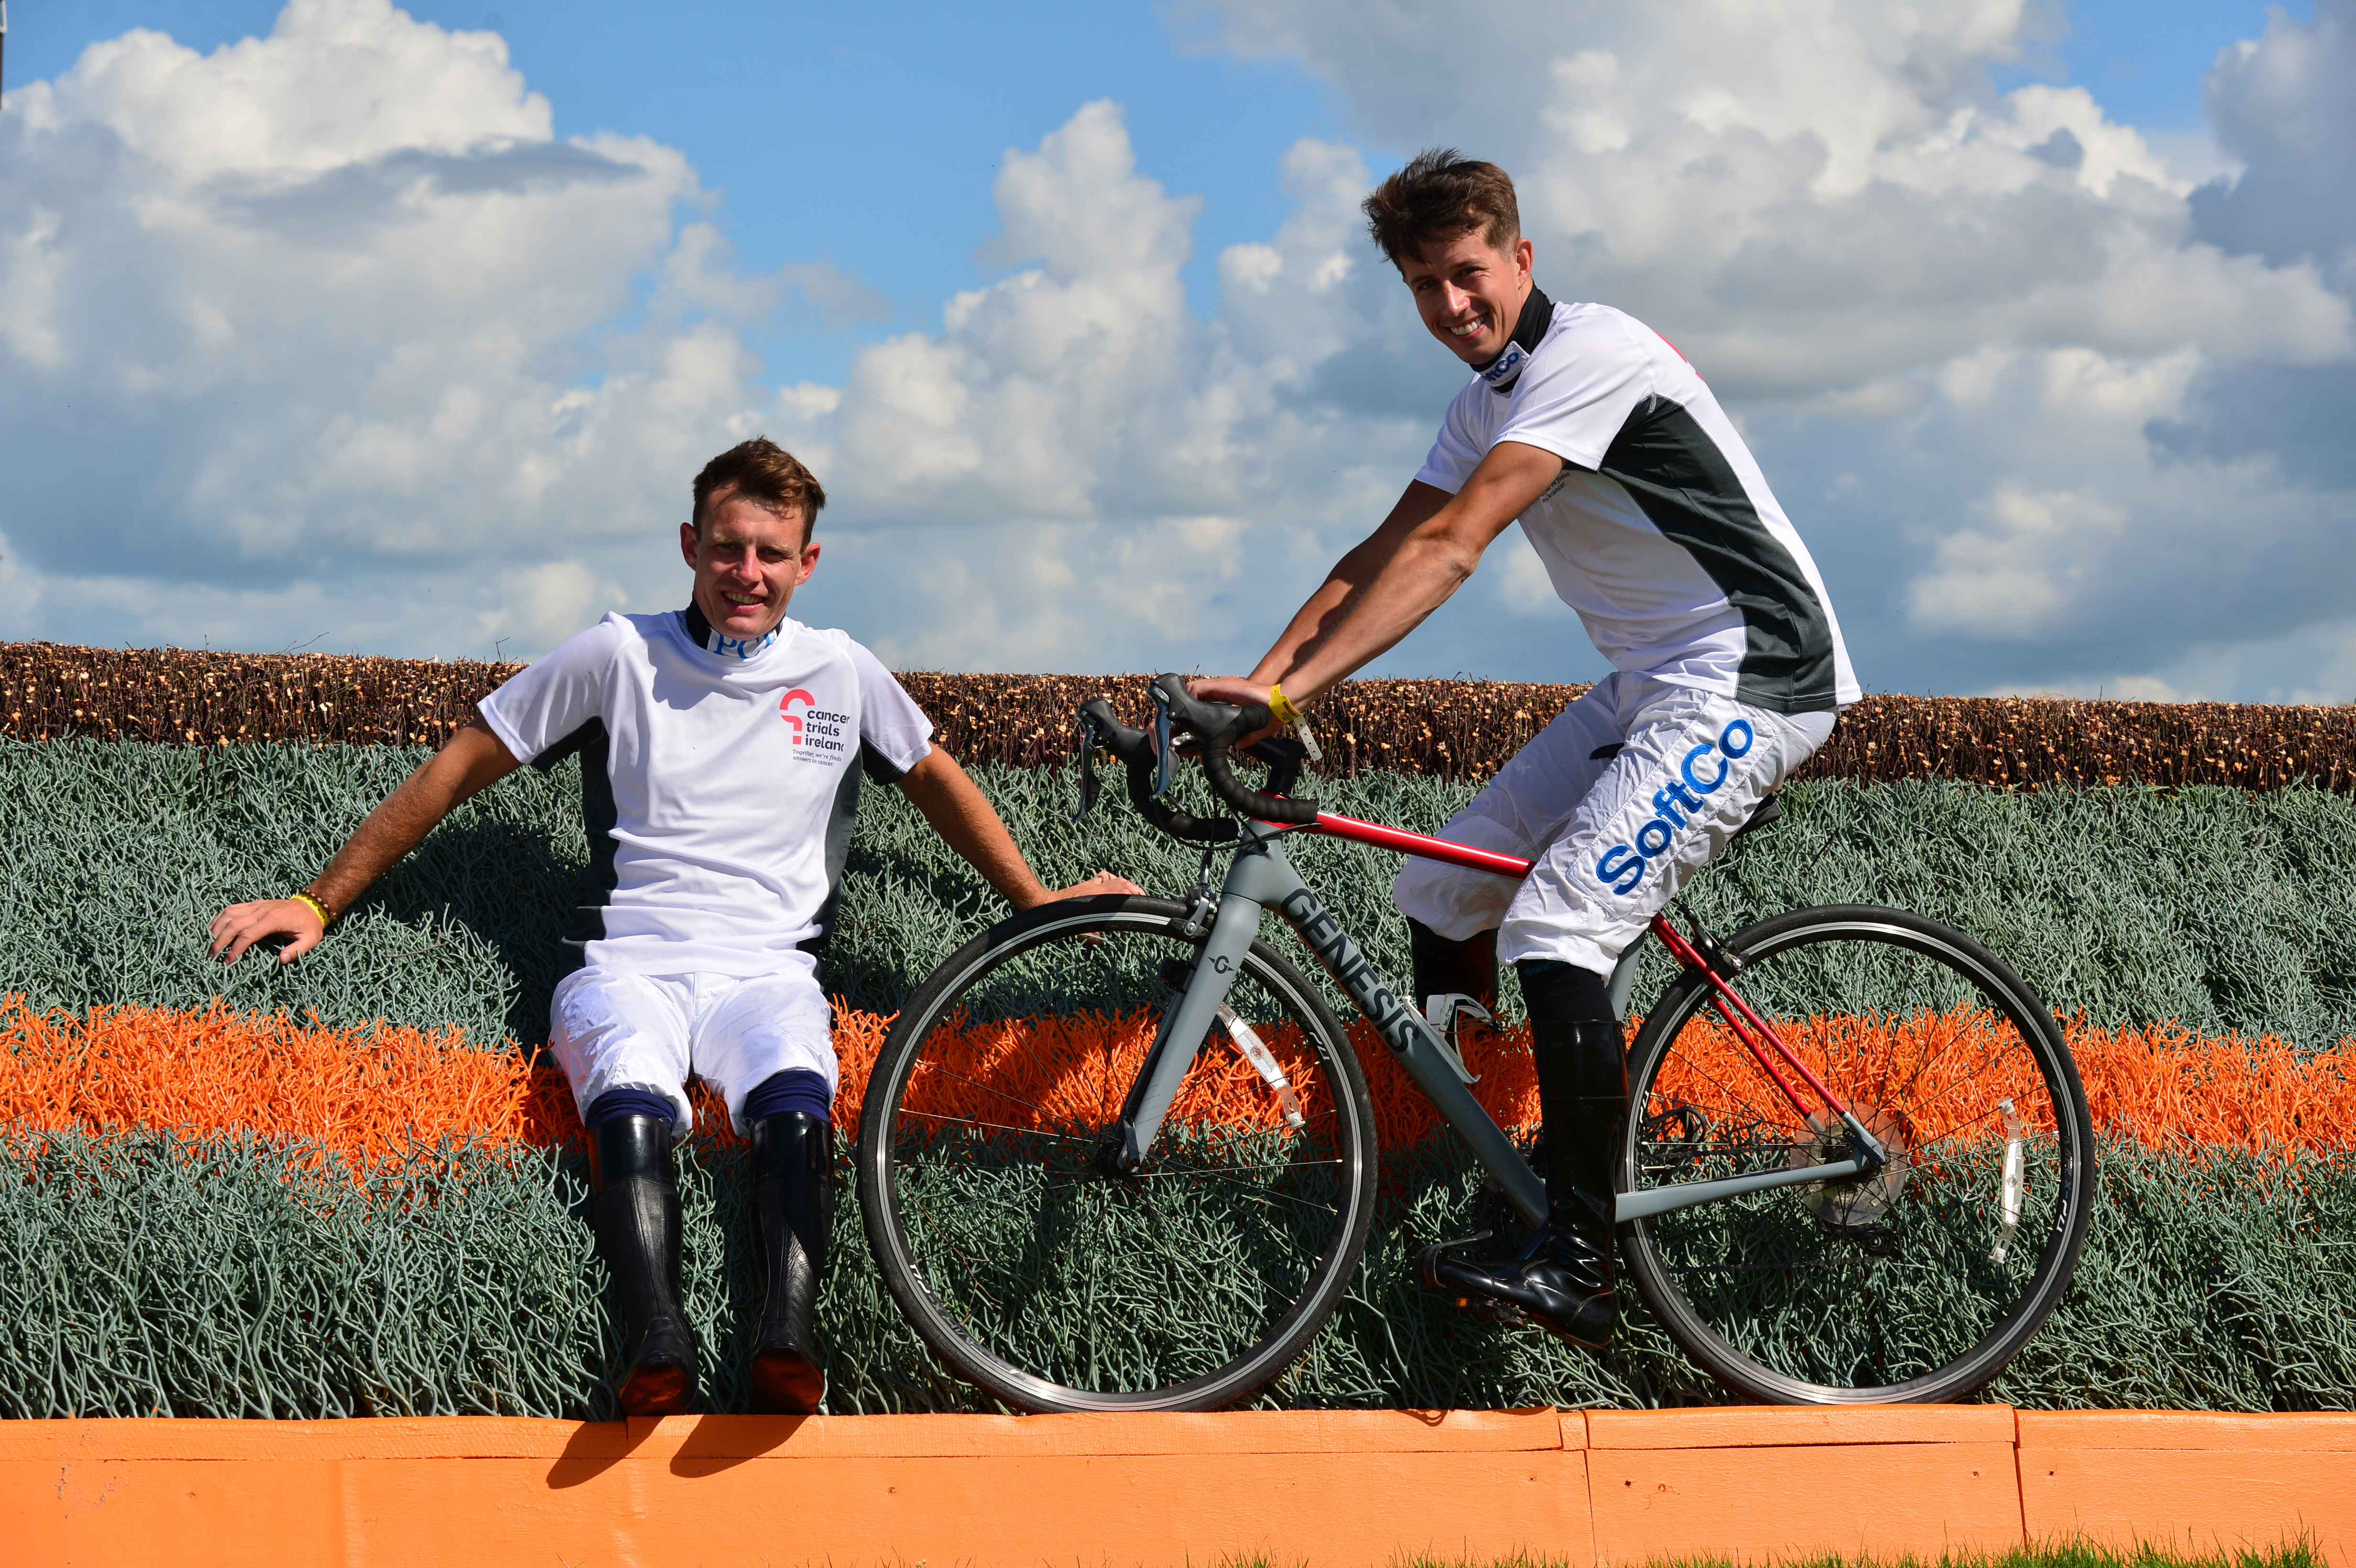 Coast to Curragh charity cycle in memory of Pat Smullen